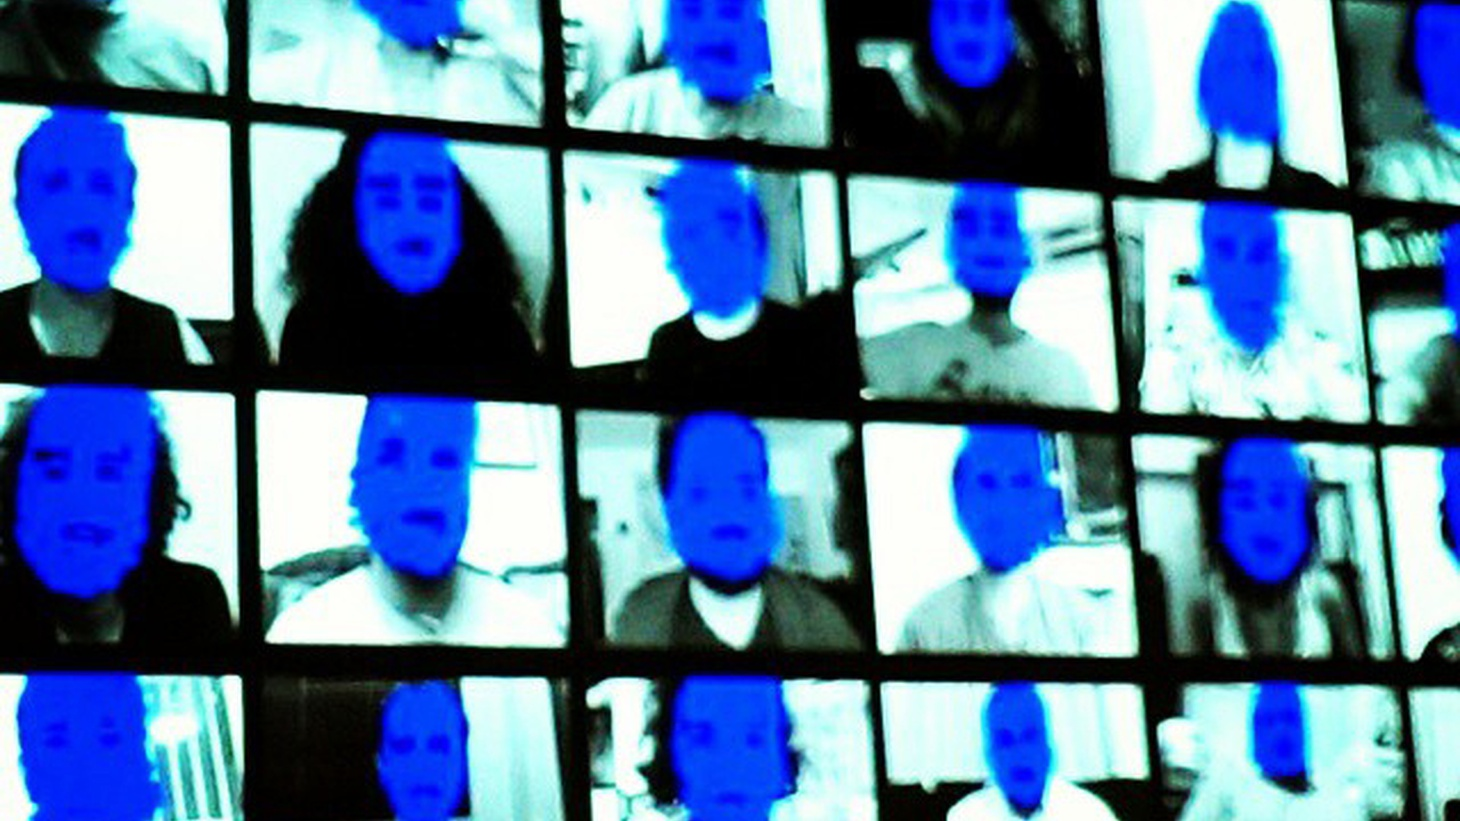 Privacy advocates are warning about the loss of public anonymity from face-recognition technology that's ubiquitous thanks to Facebook and other software companies. We hear about the risks… as well as the benefits.